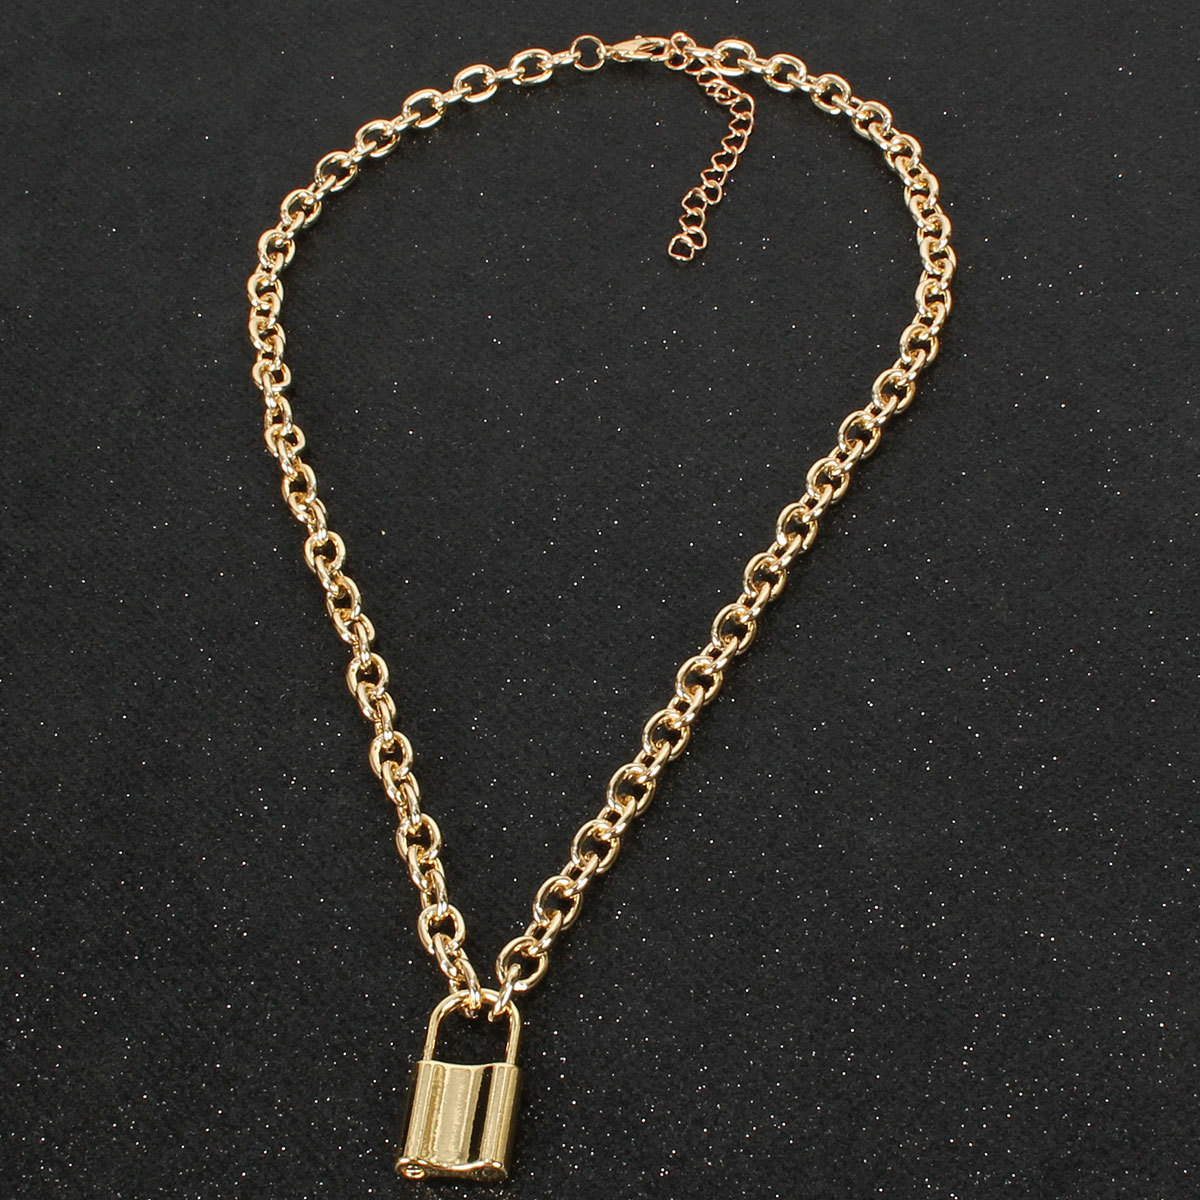 Lock pendant women's simple necklace necklace alloy necklace NHCT185769